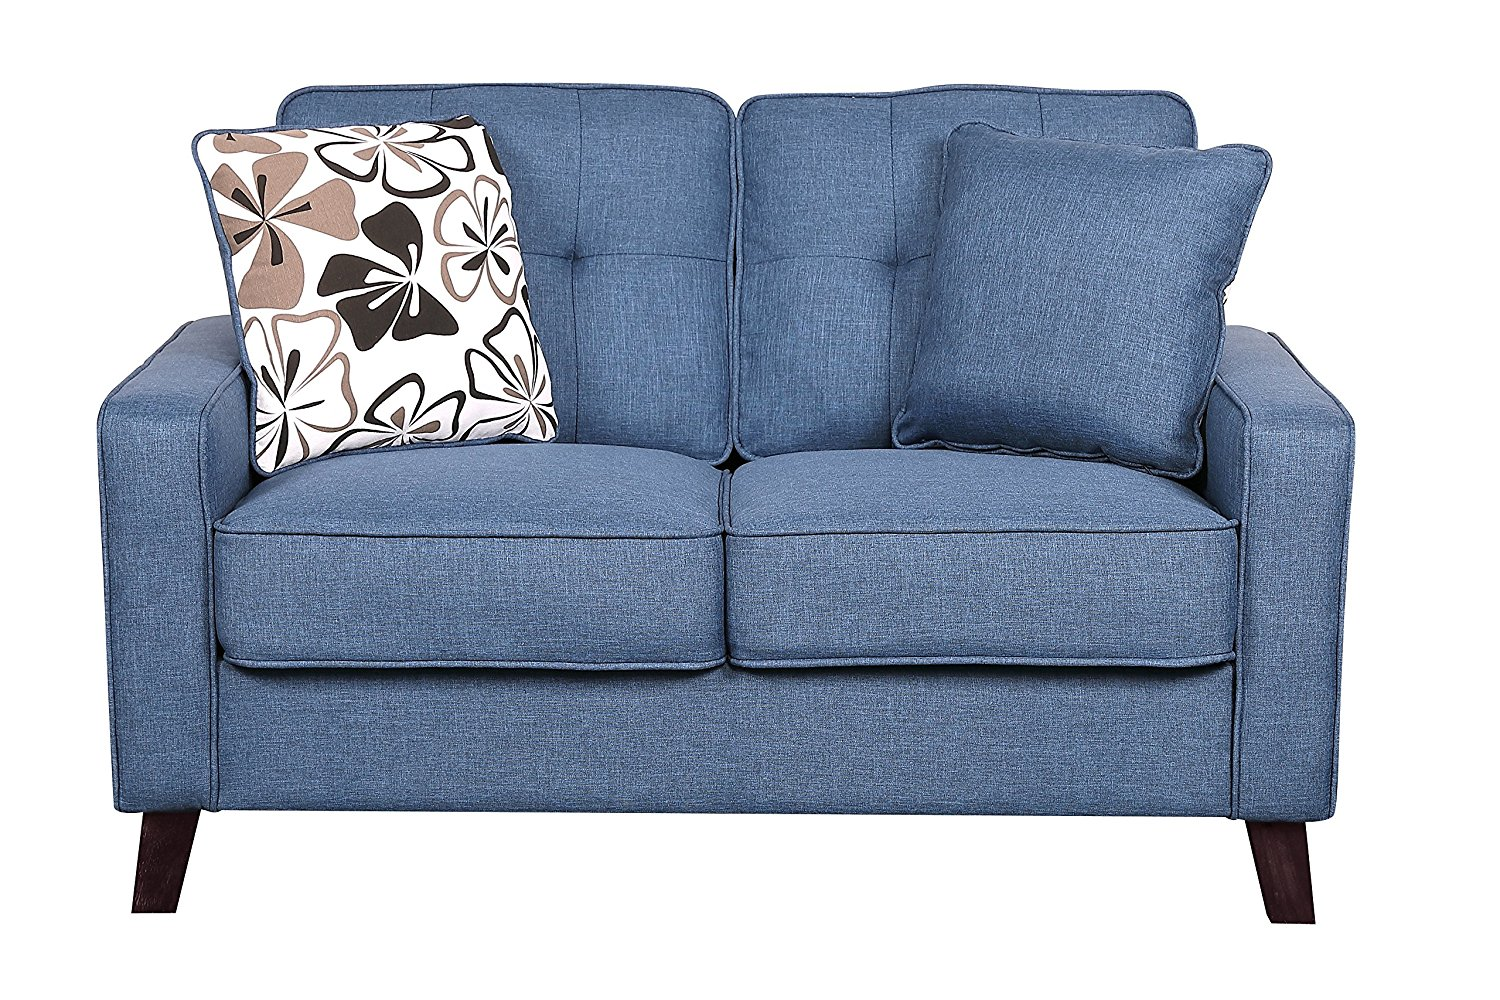 Container Furniture Direct Modern Collection Upholstered Linen Loveseat With Wood Legs and Two Button Tufted Accent Pillows, Blue